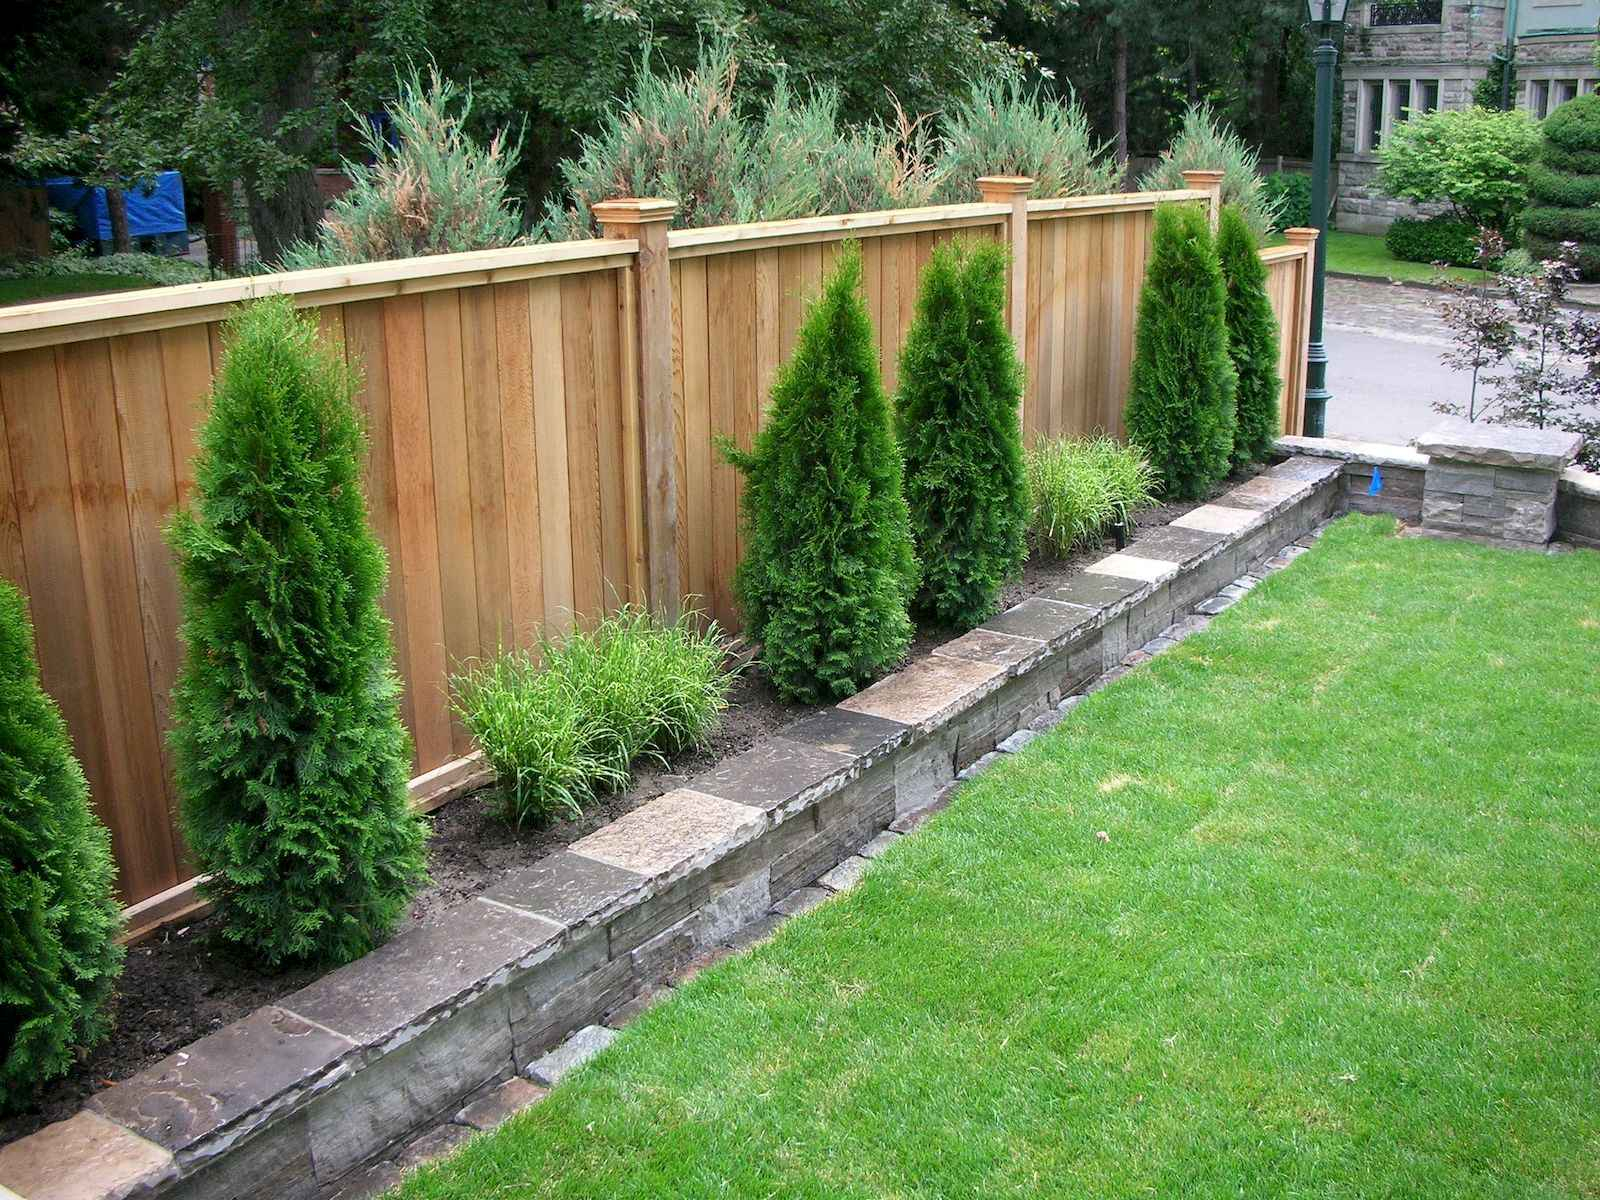 50 Stunning Backyard Privacy Fence Ideas Decorations And Remodel 3 with Backyard Privacy Fence Ideas